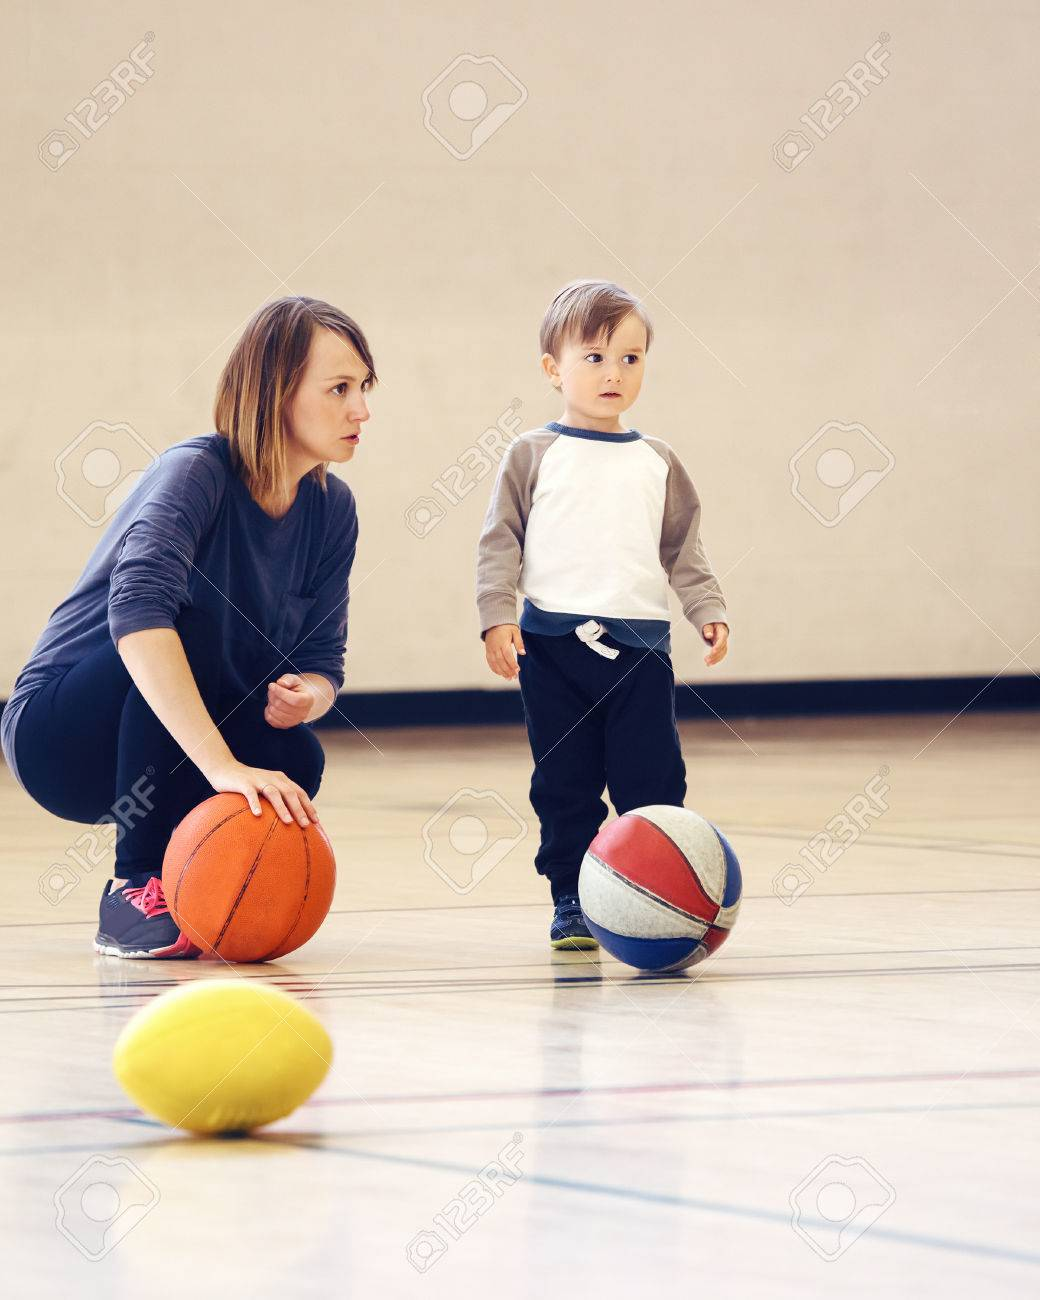 Mother and son playing with ball in gym, early child healthy development, family fun, coaching and training concept, - 64550182